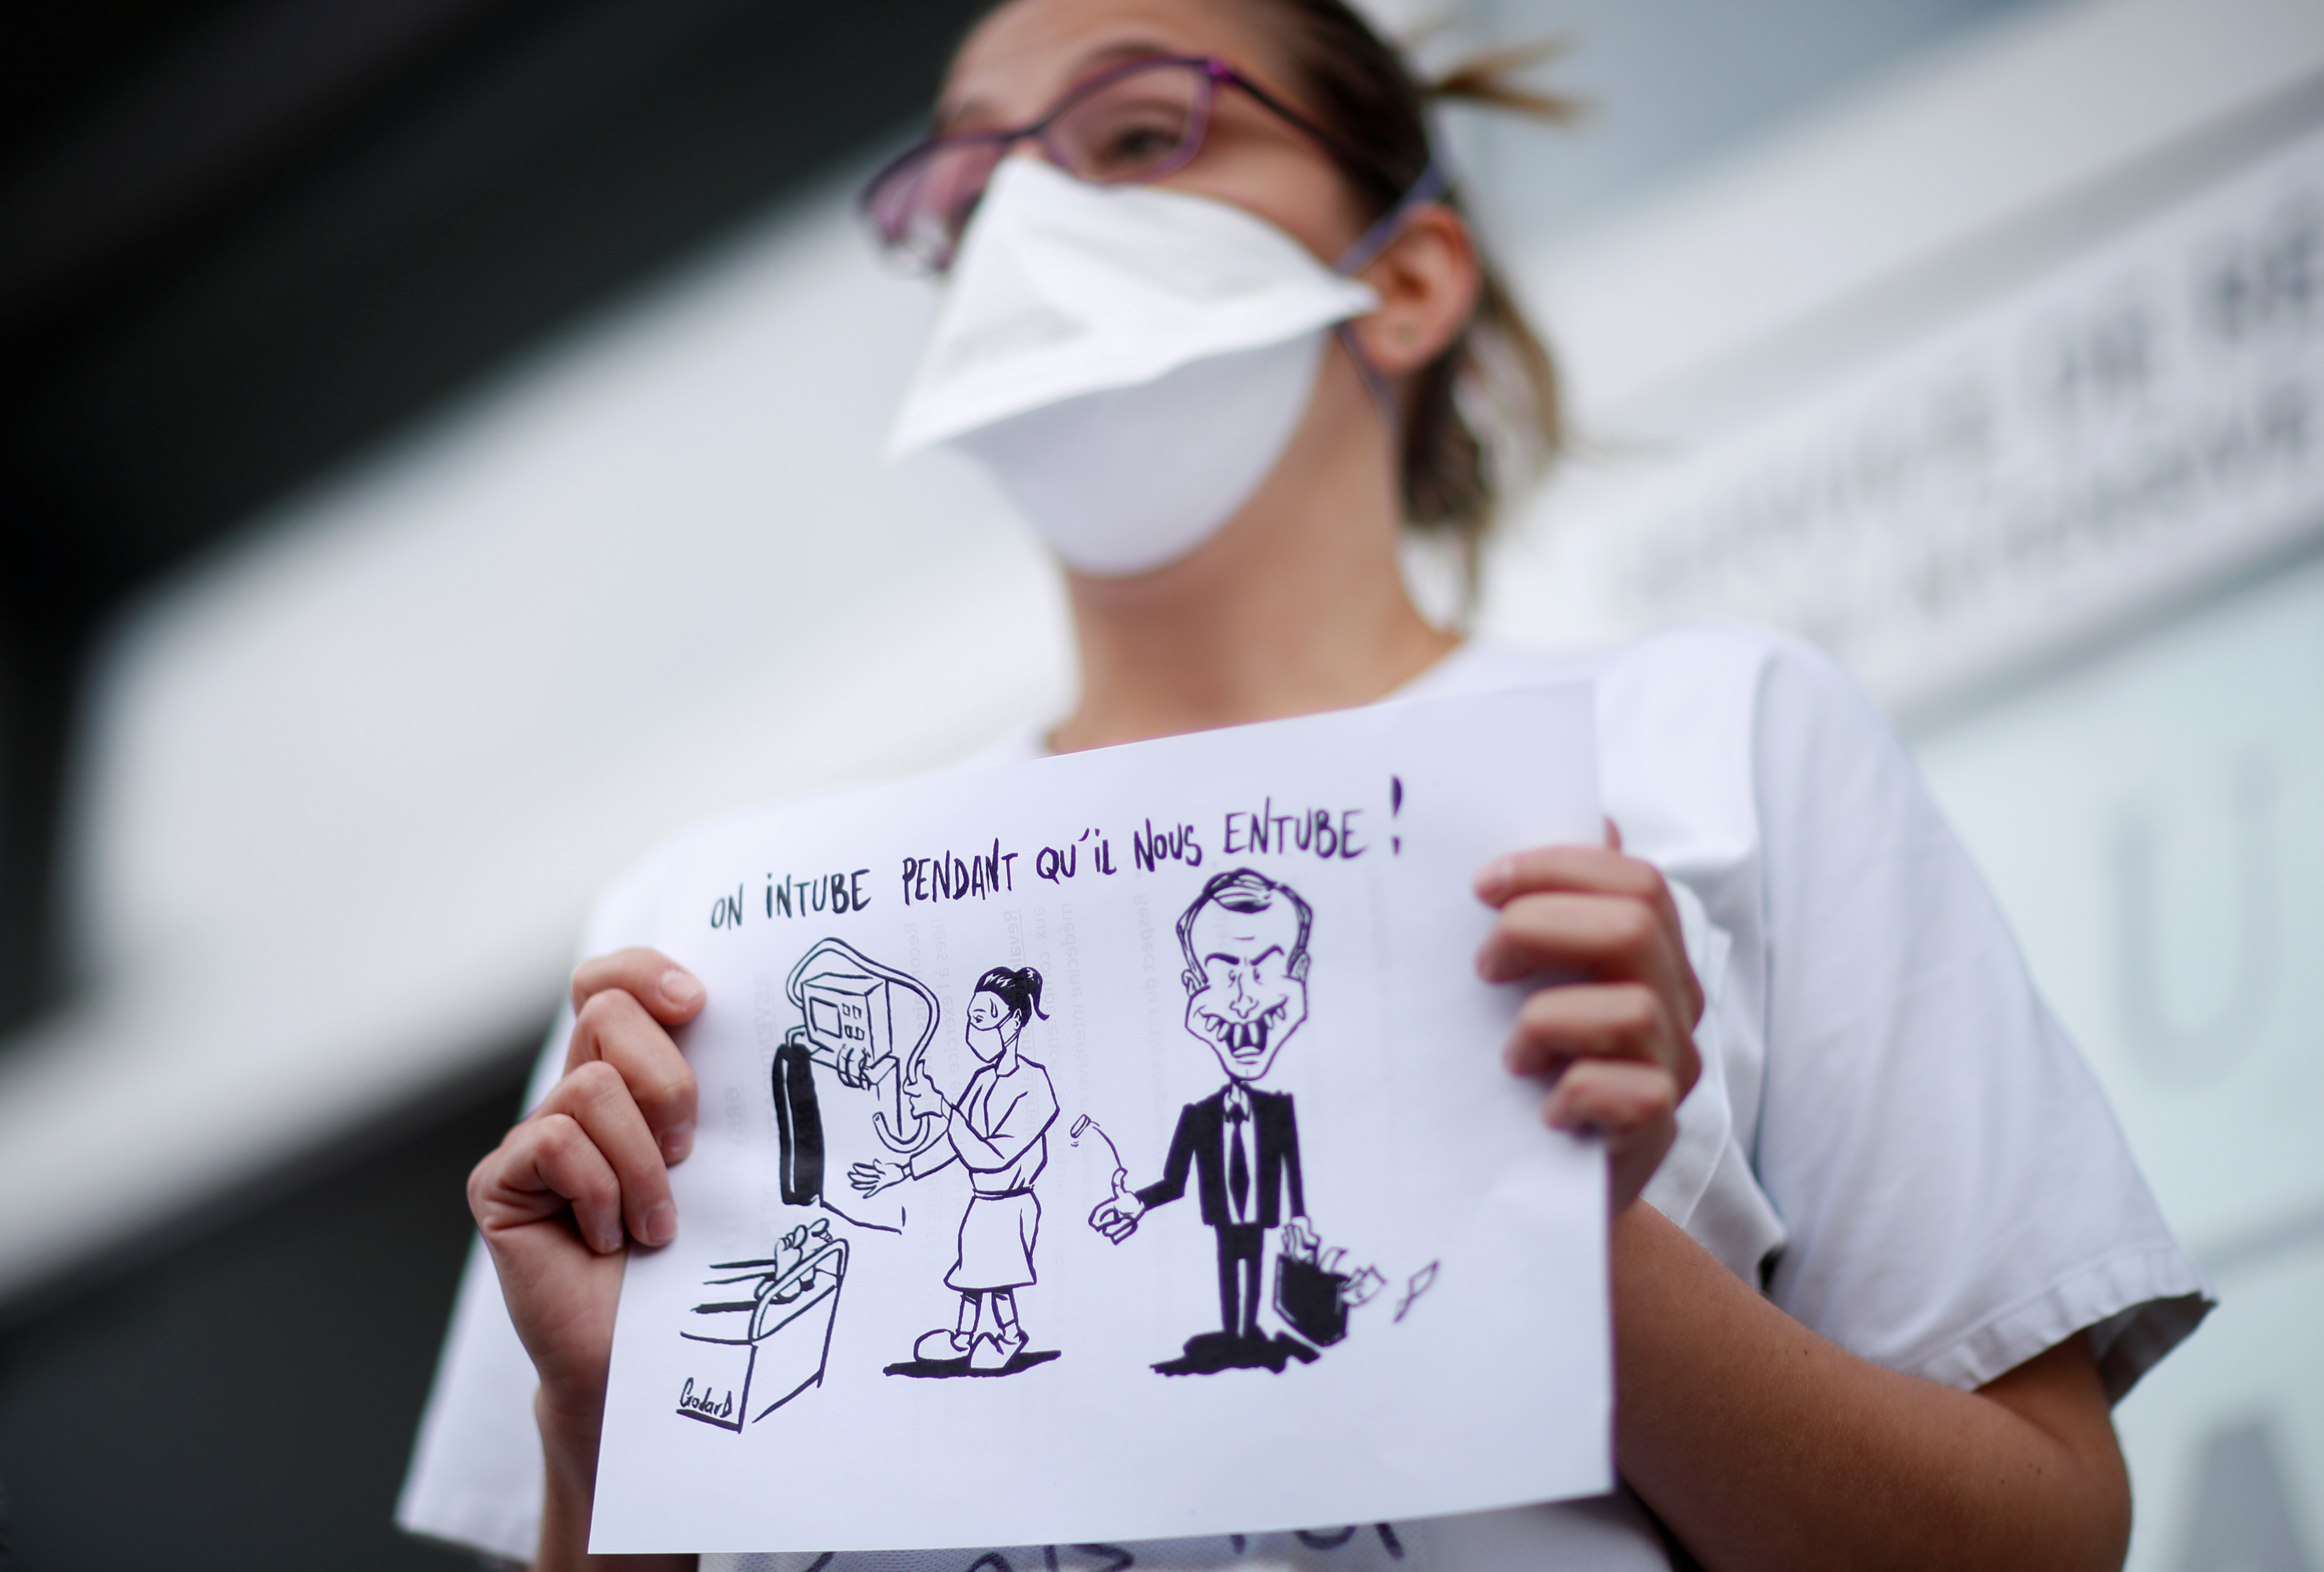 A nurse of the Intensive Care Unit (ICU) on strike attends a demonstration in front of the Robert Ballanger hospital in Aulnay-sous-Bois near Paris during a national strike to demand better recognition of their work and salary increases amid the coronavirus disease (COVID-19) outbreak in France, May 11, 2021.REUTERS/Gonzalo Fuentes